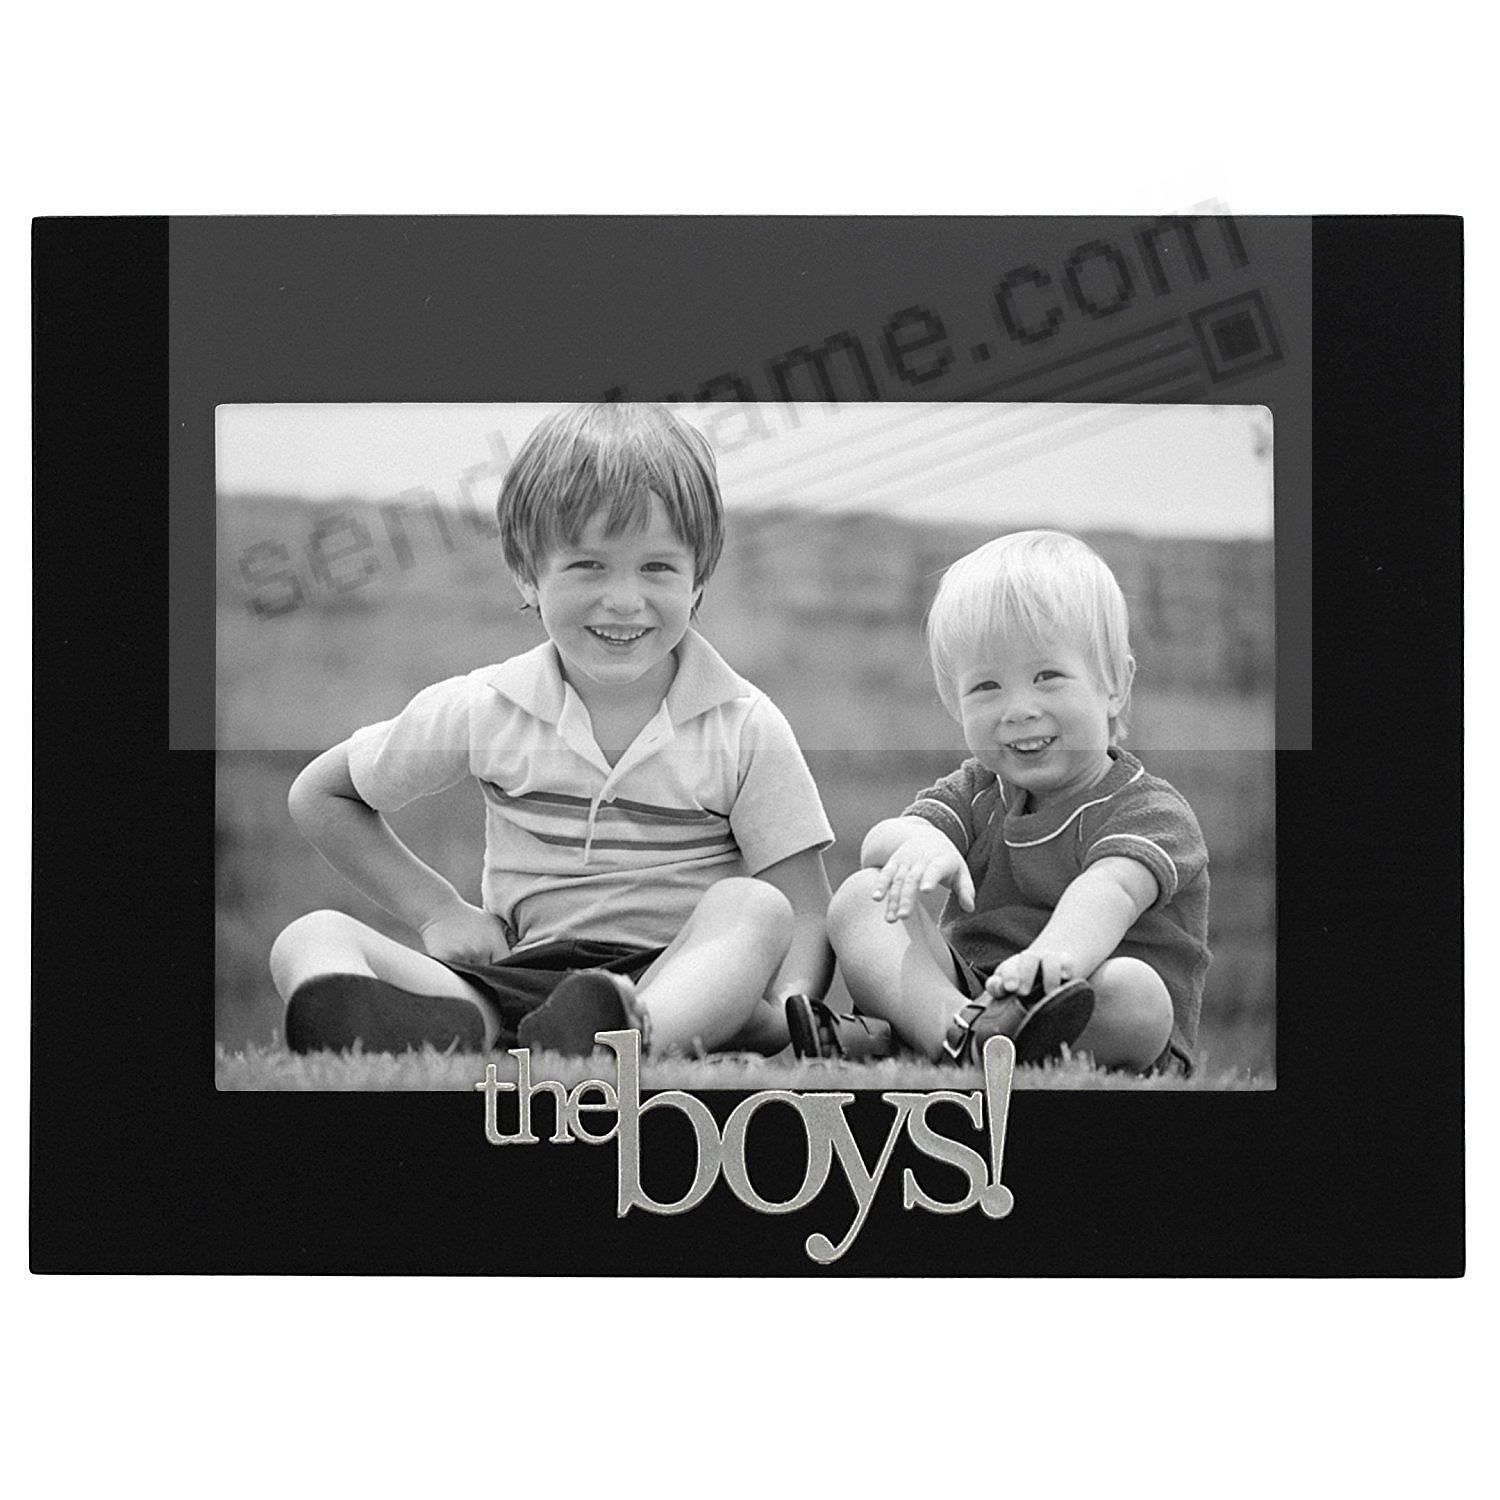 THE BOYS! Black Wood Expressions 6x4 frame - Picture Frames, Photo ...